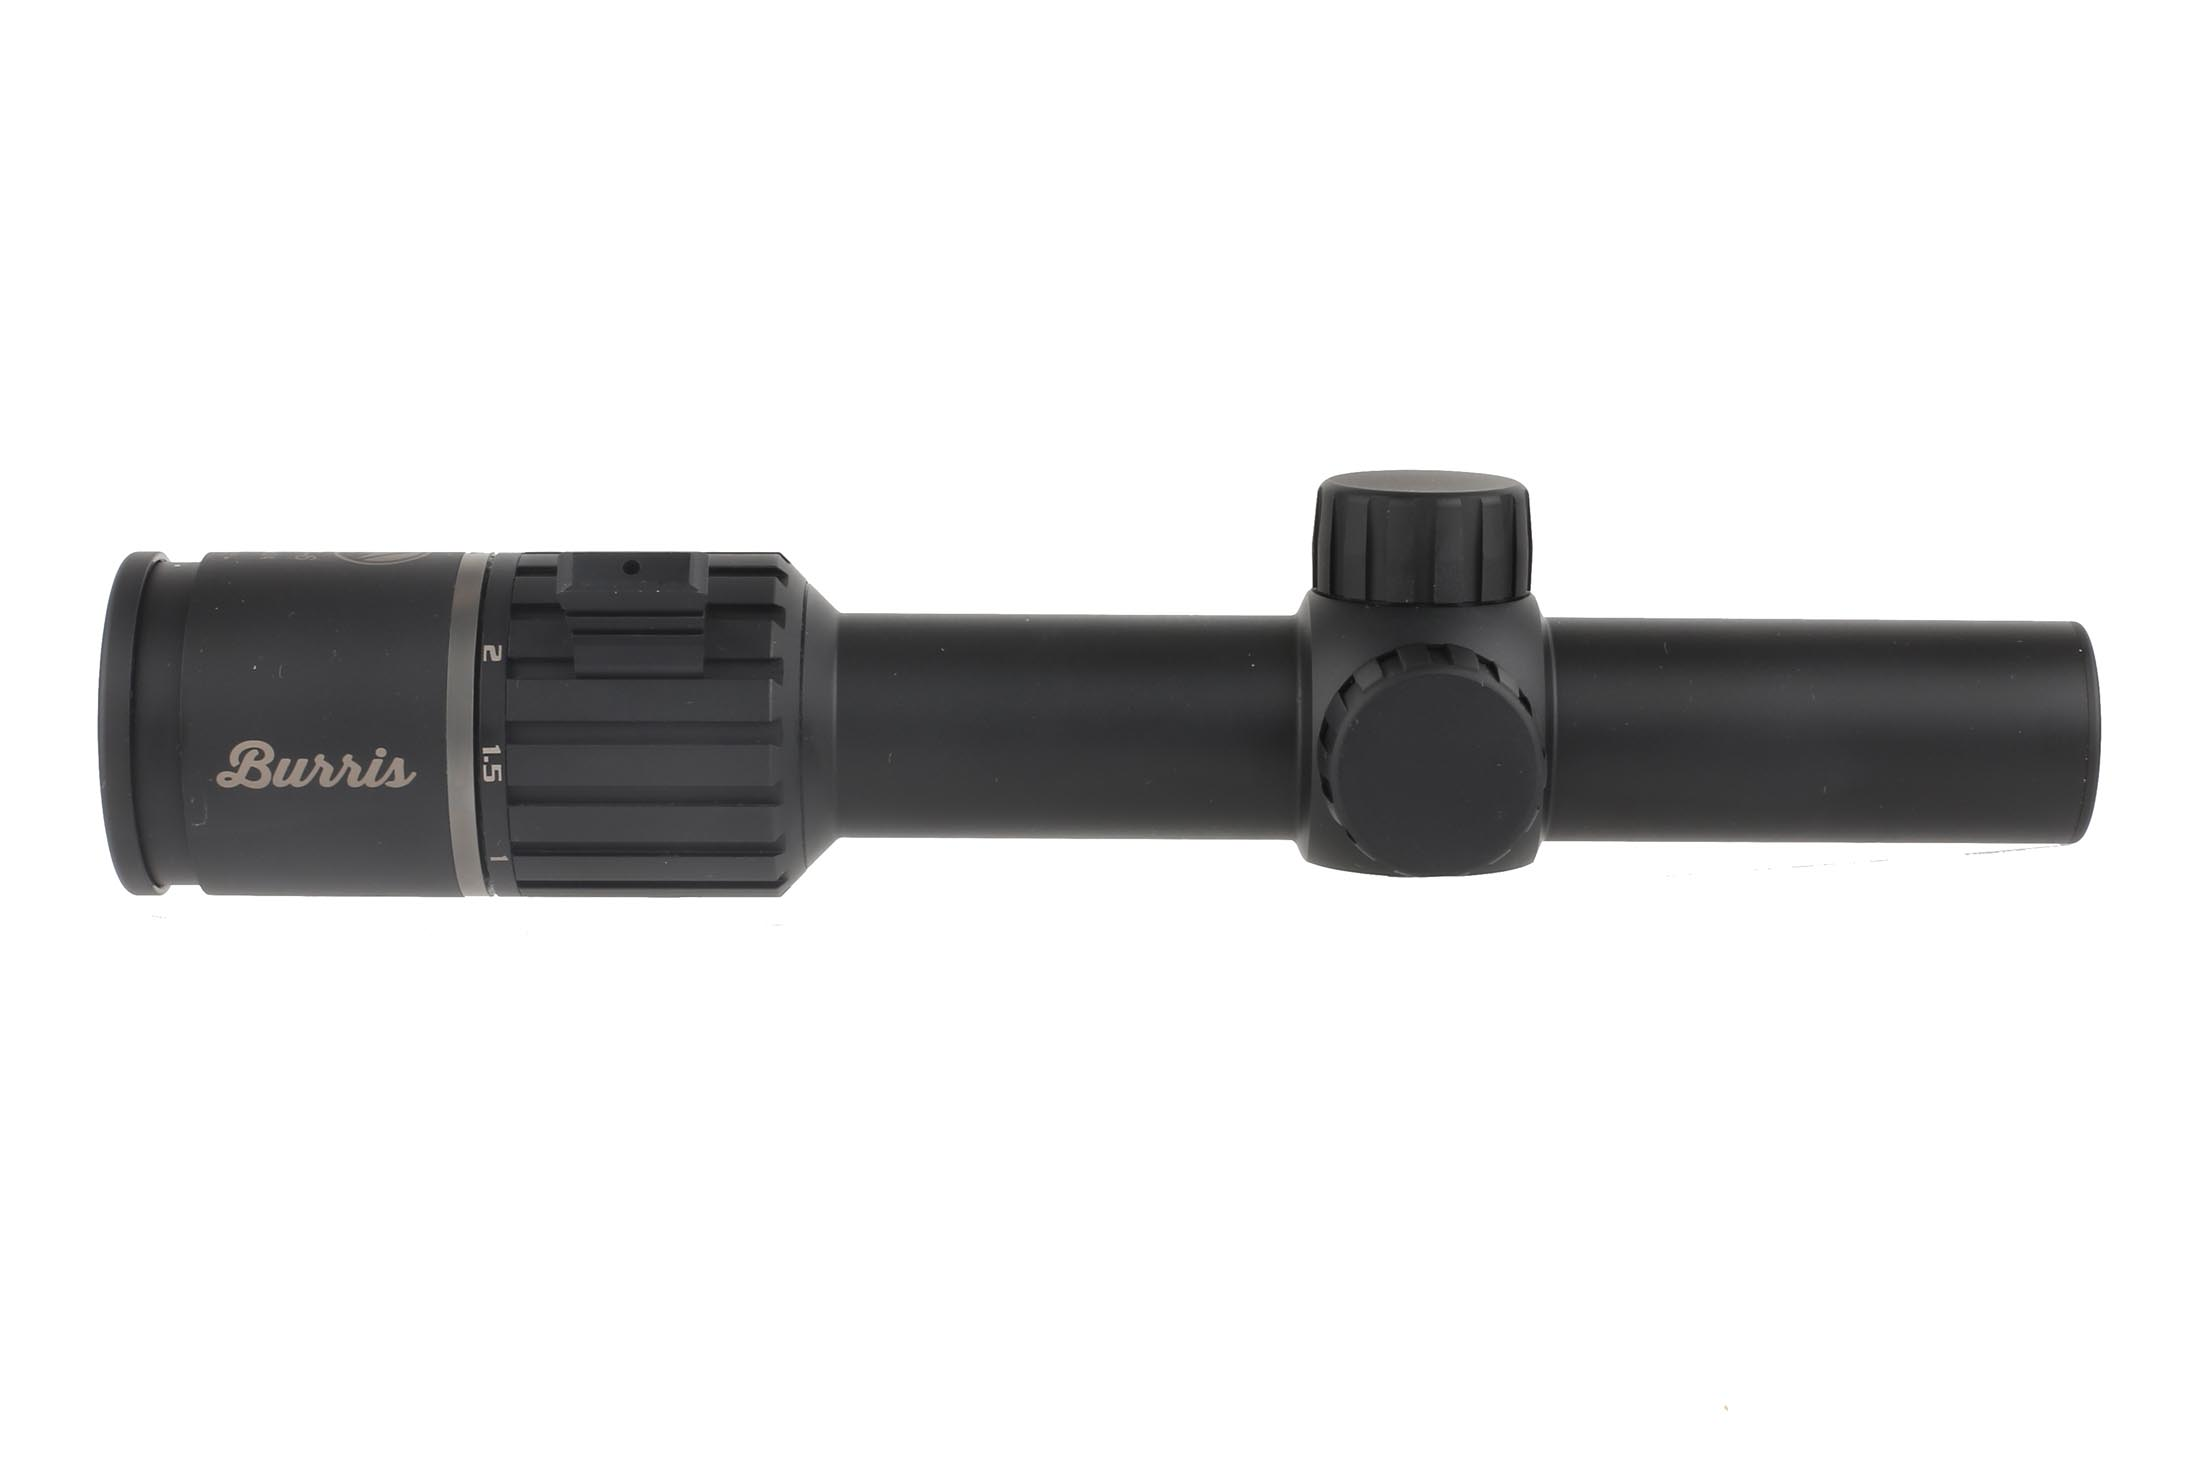 Burris Optics RT-6 Riflescope 1-6x24mm - Ballistic AR (5X) Reticle